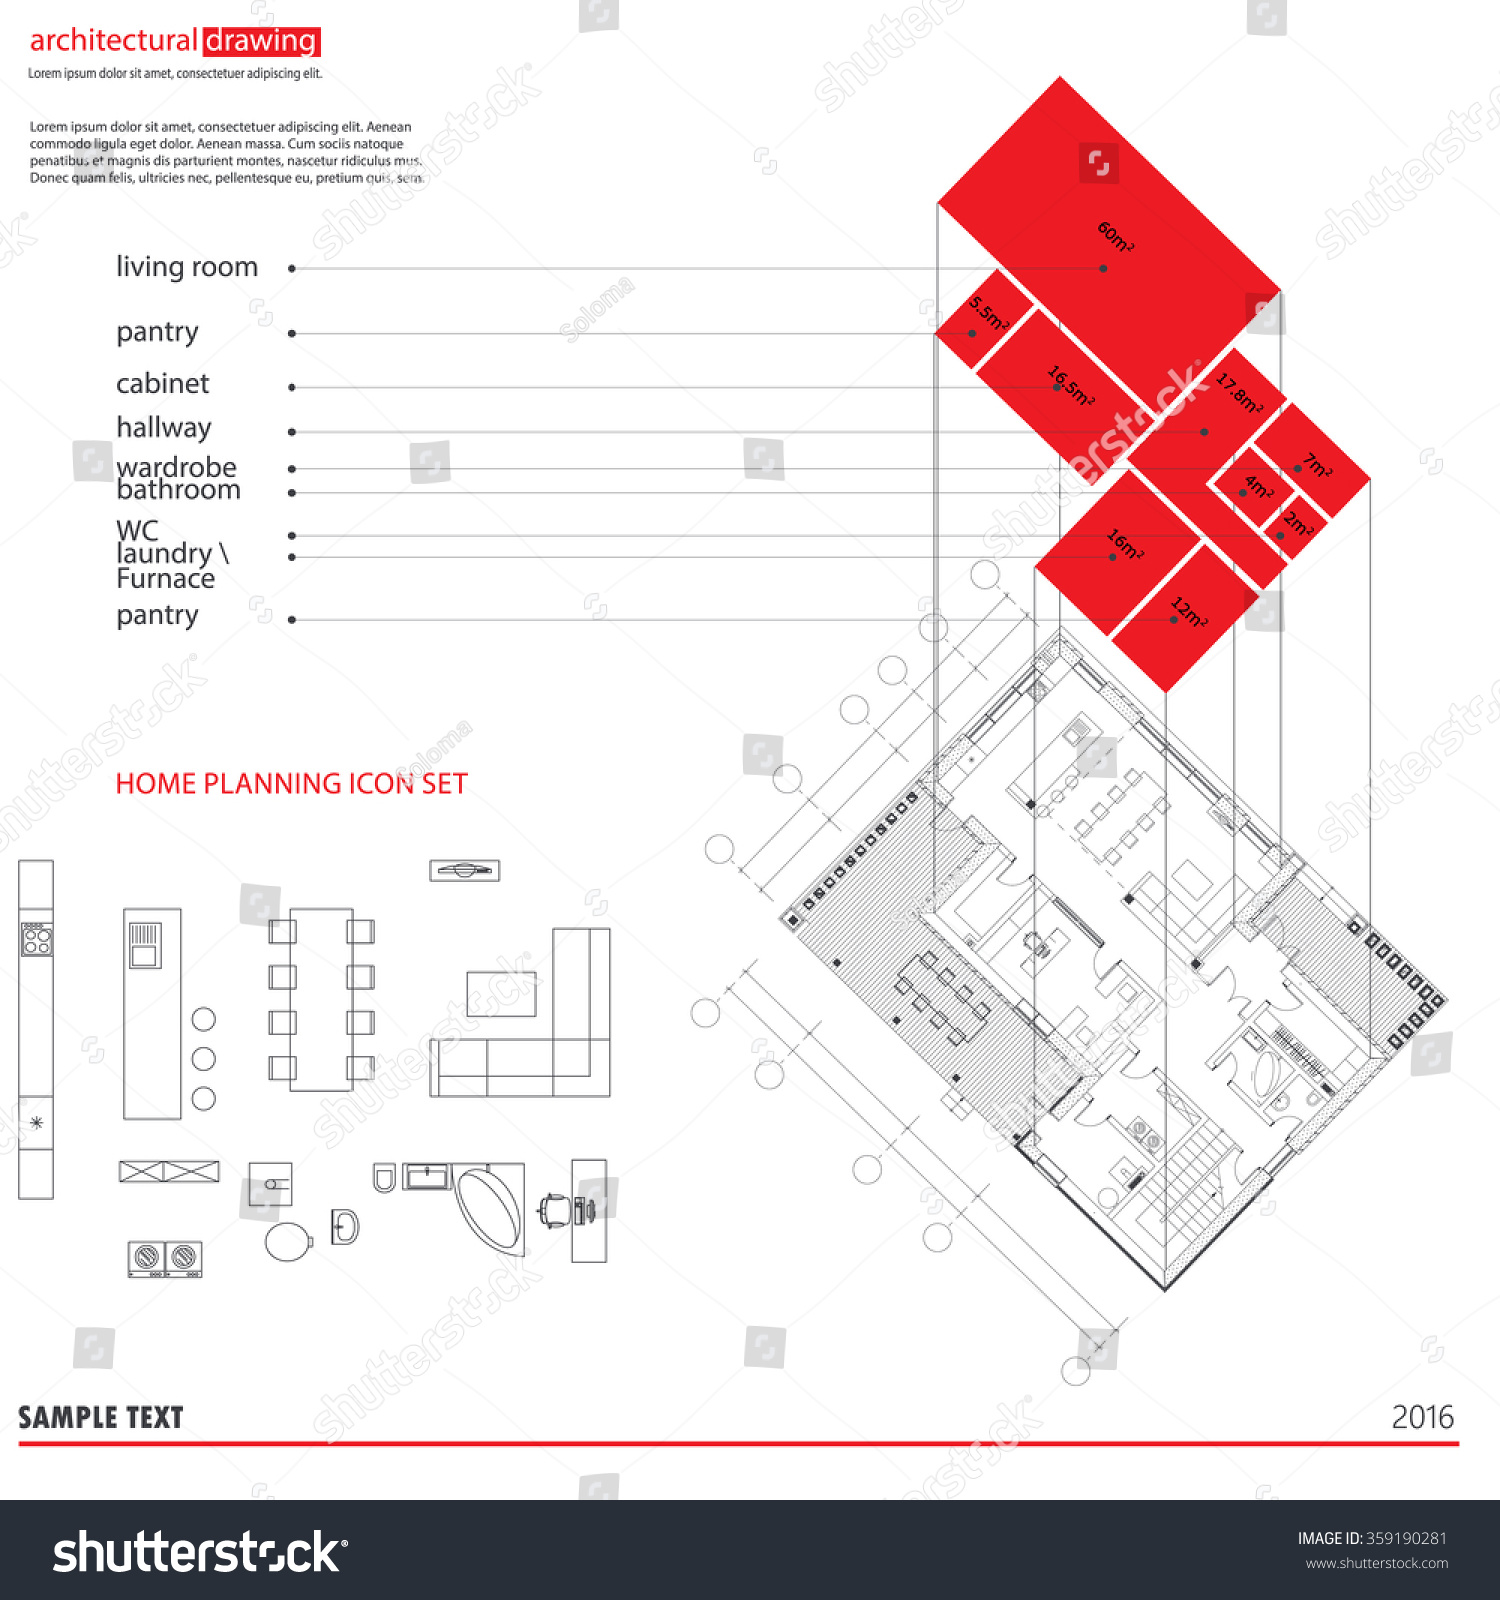 Architectural Drawings Plans Background 3D Diagram Of The Plan Furniture Symbols Used